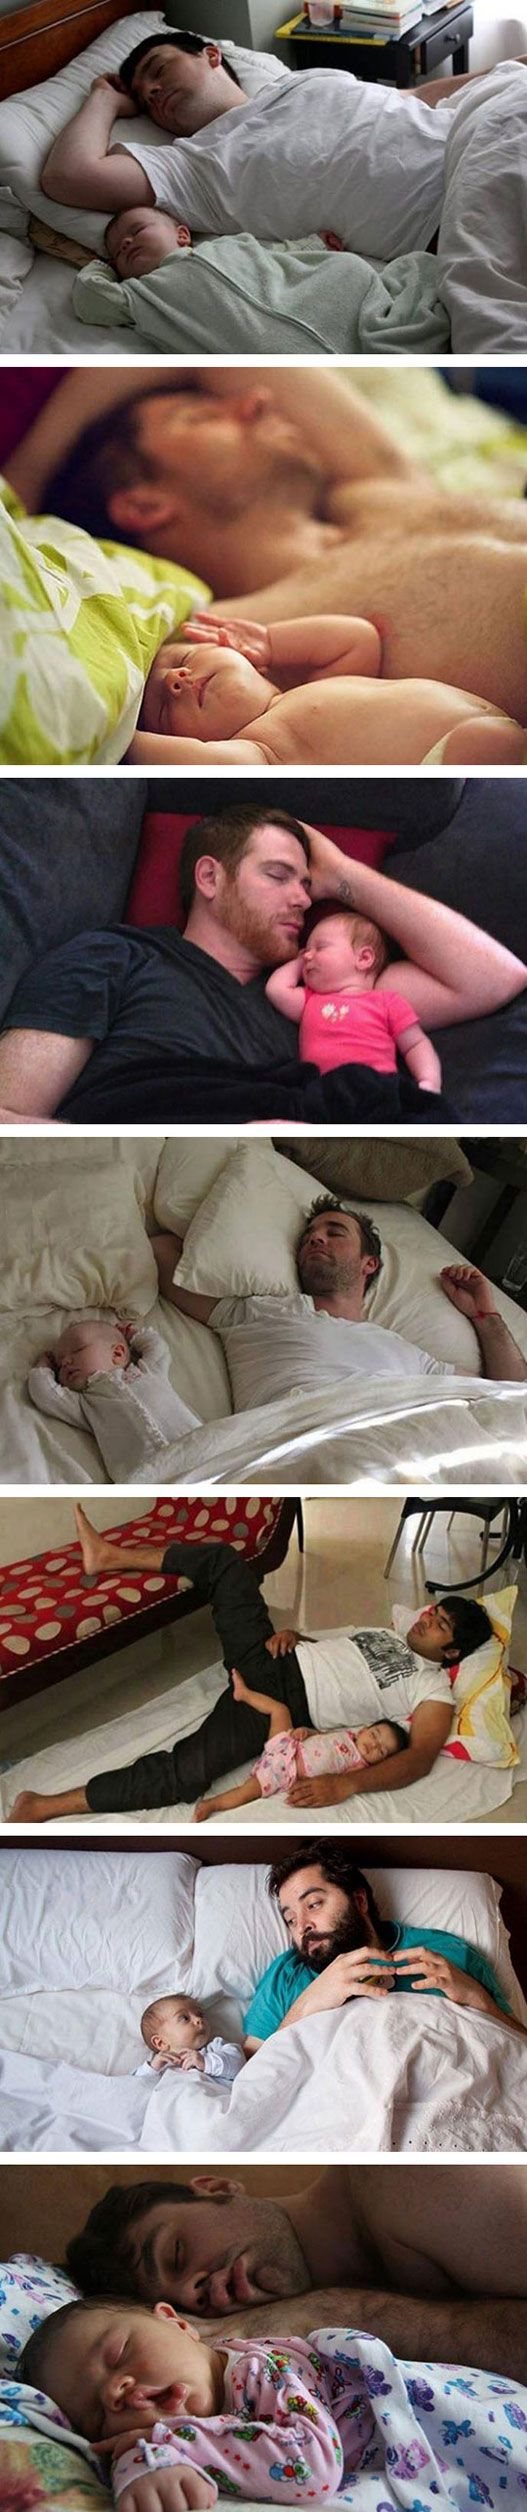 We don't need DNA tests here...